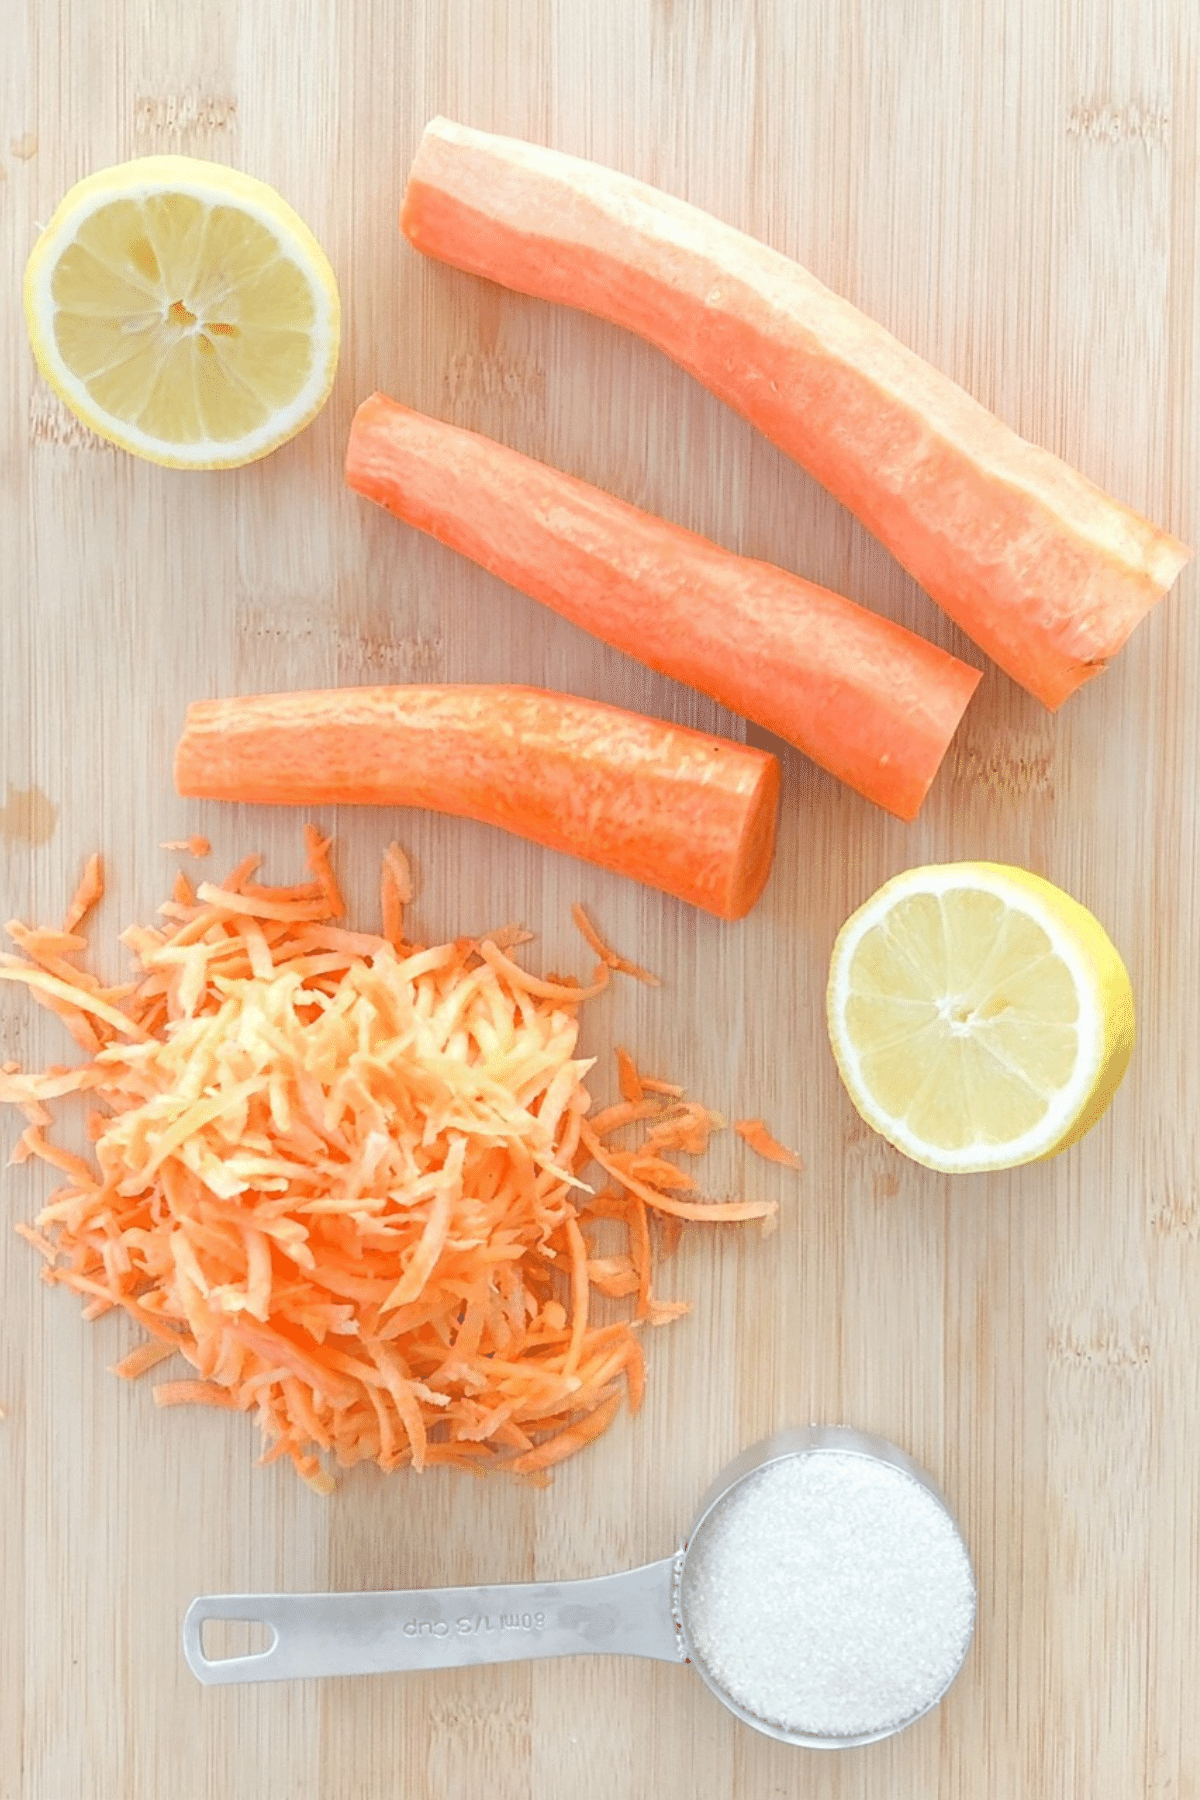 Ingredients for carrot salad on a cutting board, freshly grated carrots, lemon juice, and cane sugar